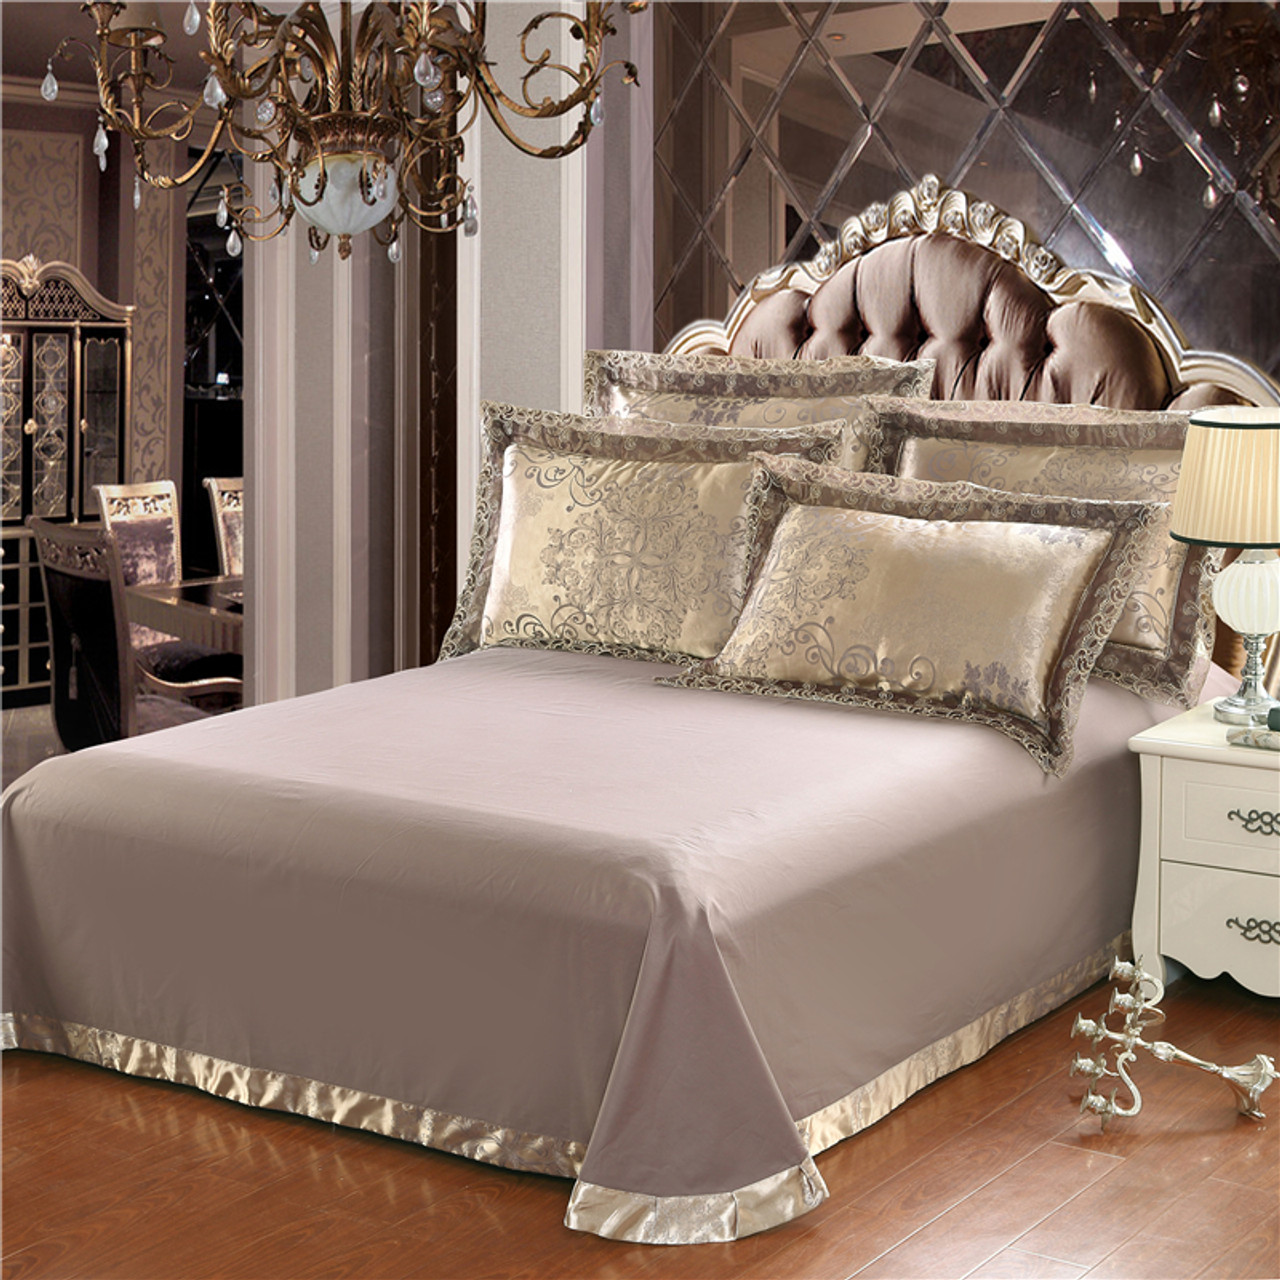 ... Gold Silver Coffee Jacquard Luxury Bedding Set Queen/king Size Stain Bed  Set 4pcs Cotton ...